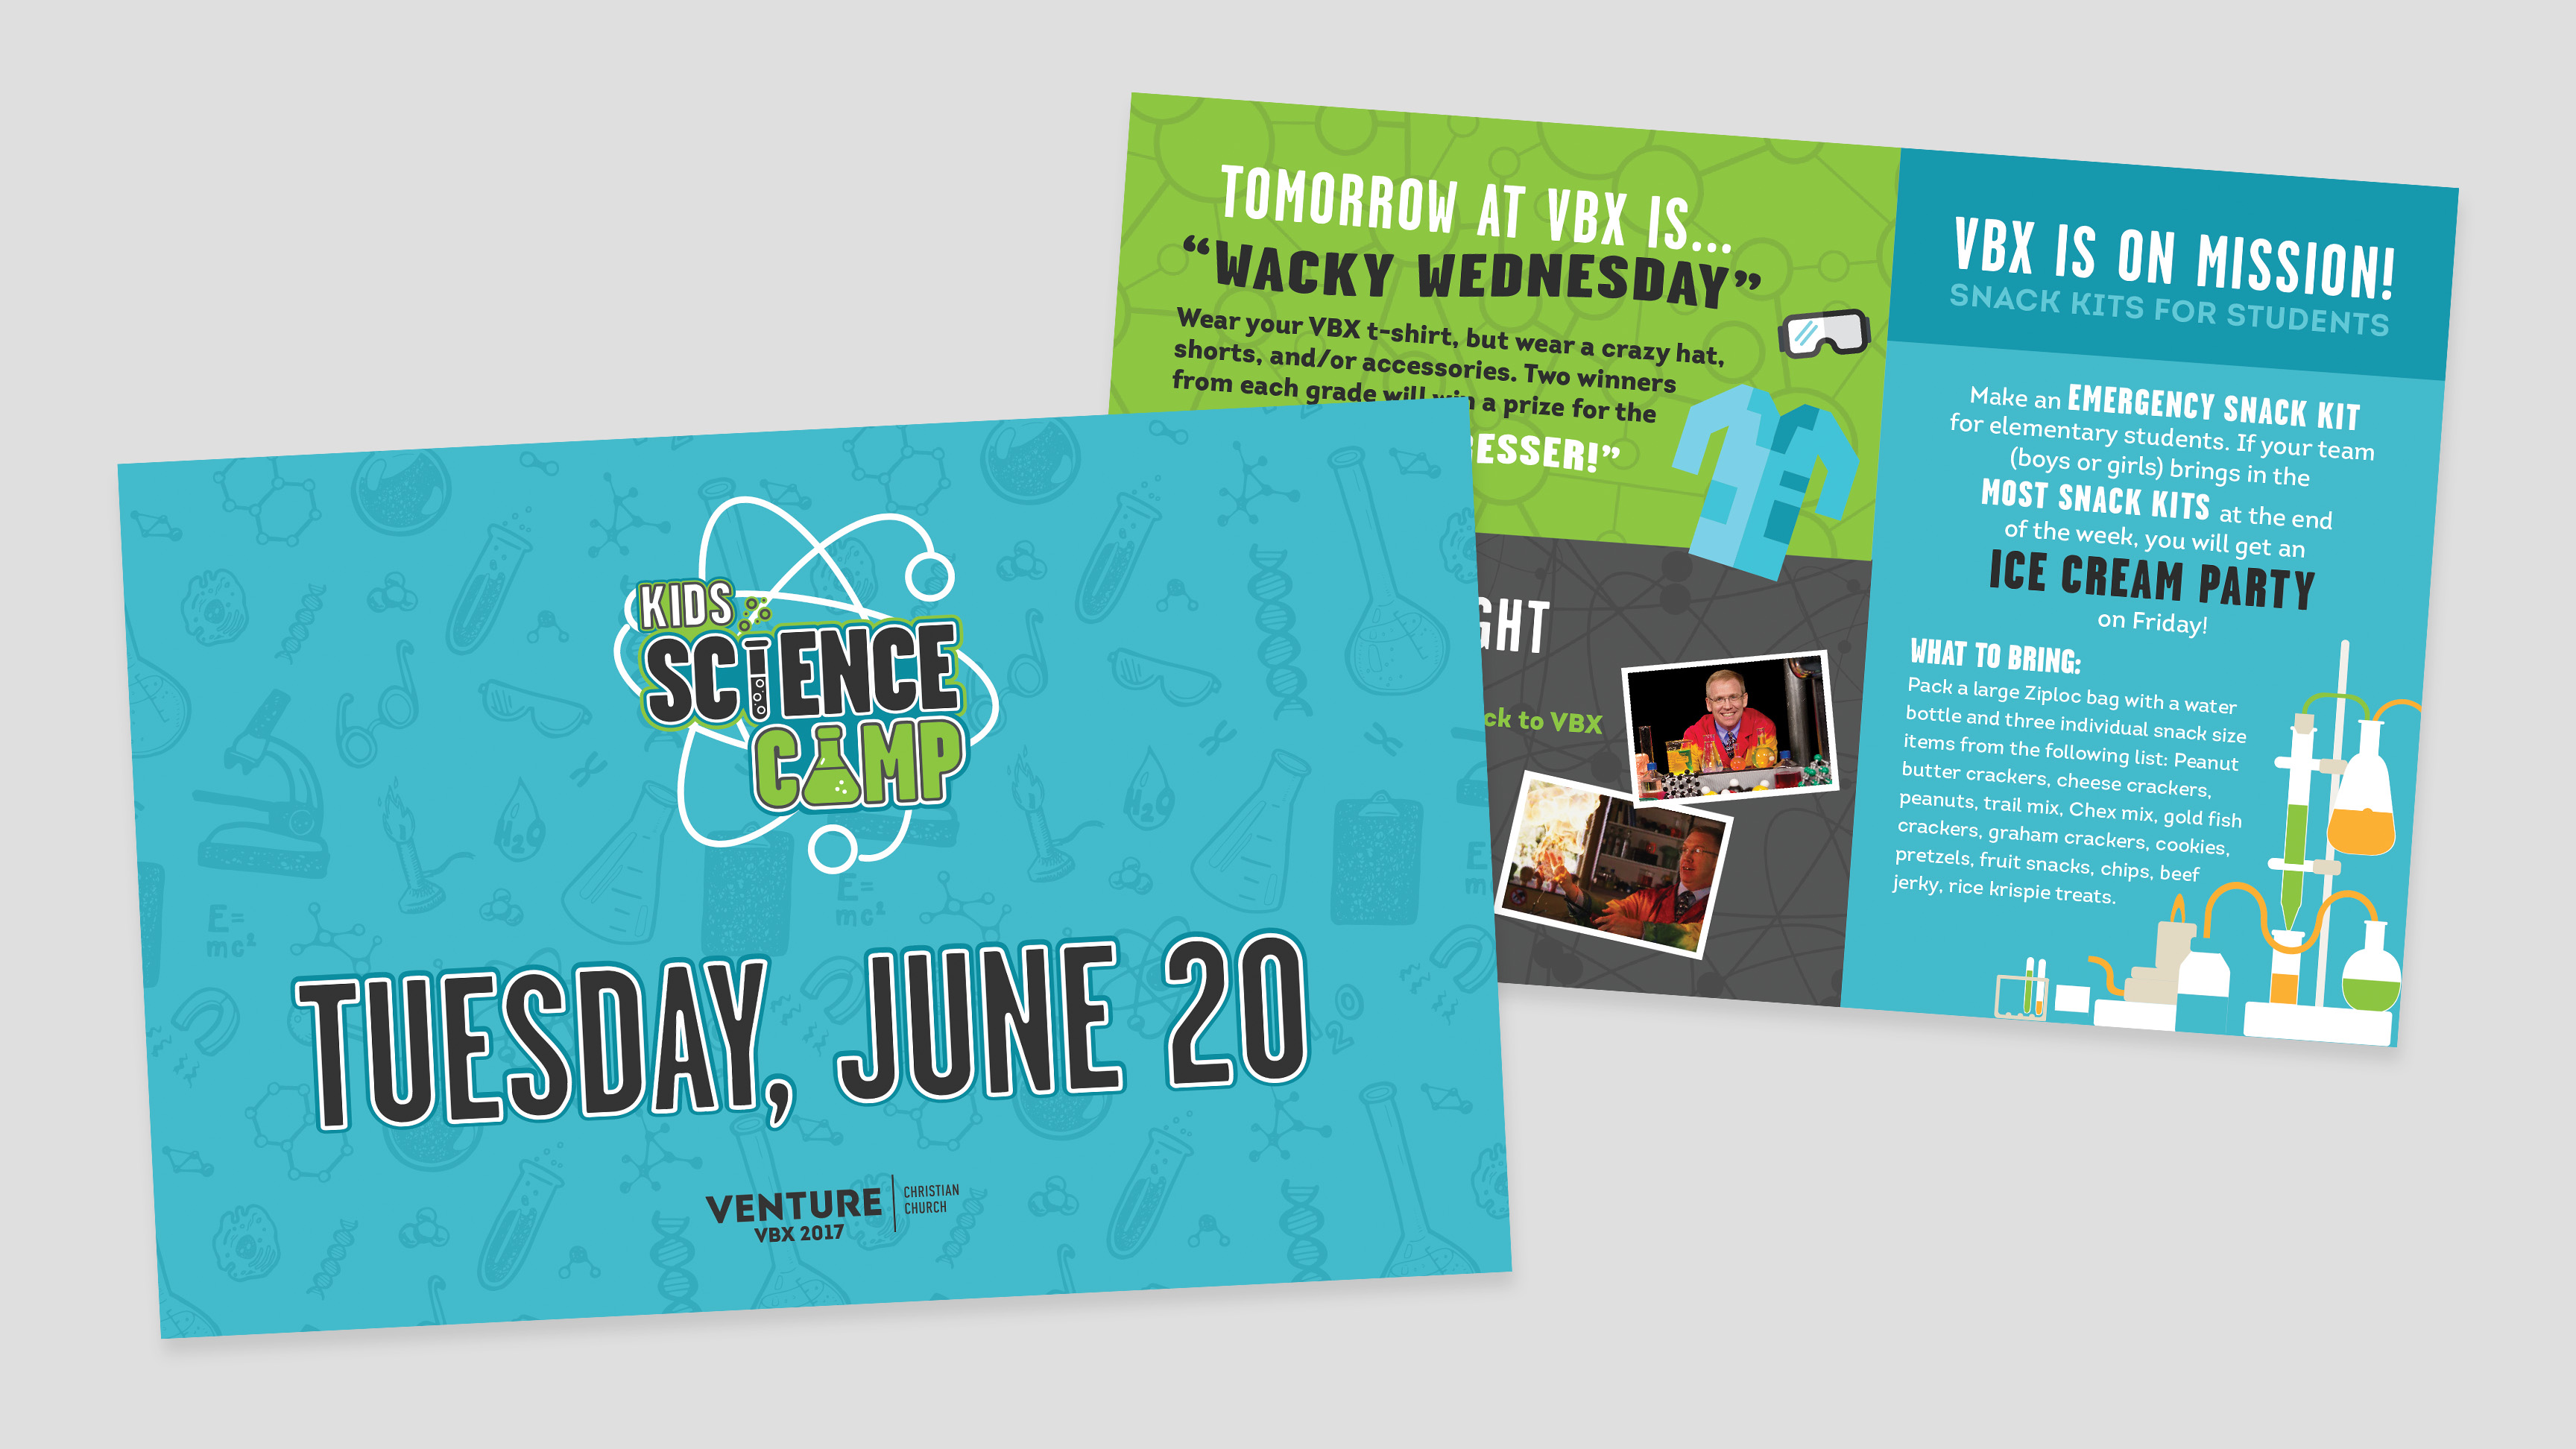 Kids Science Camp - Vacation Bible School VBS VBX Graphic Design Daily Handouts